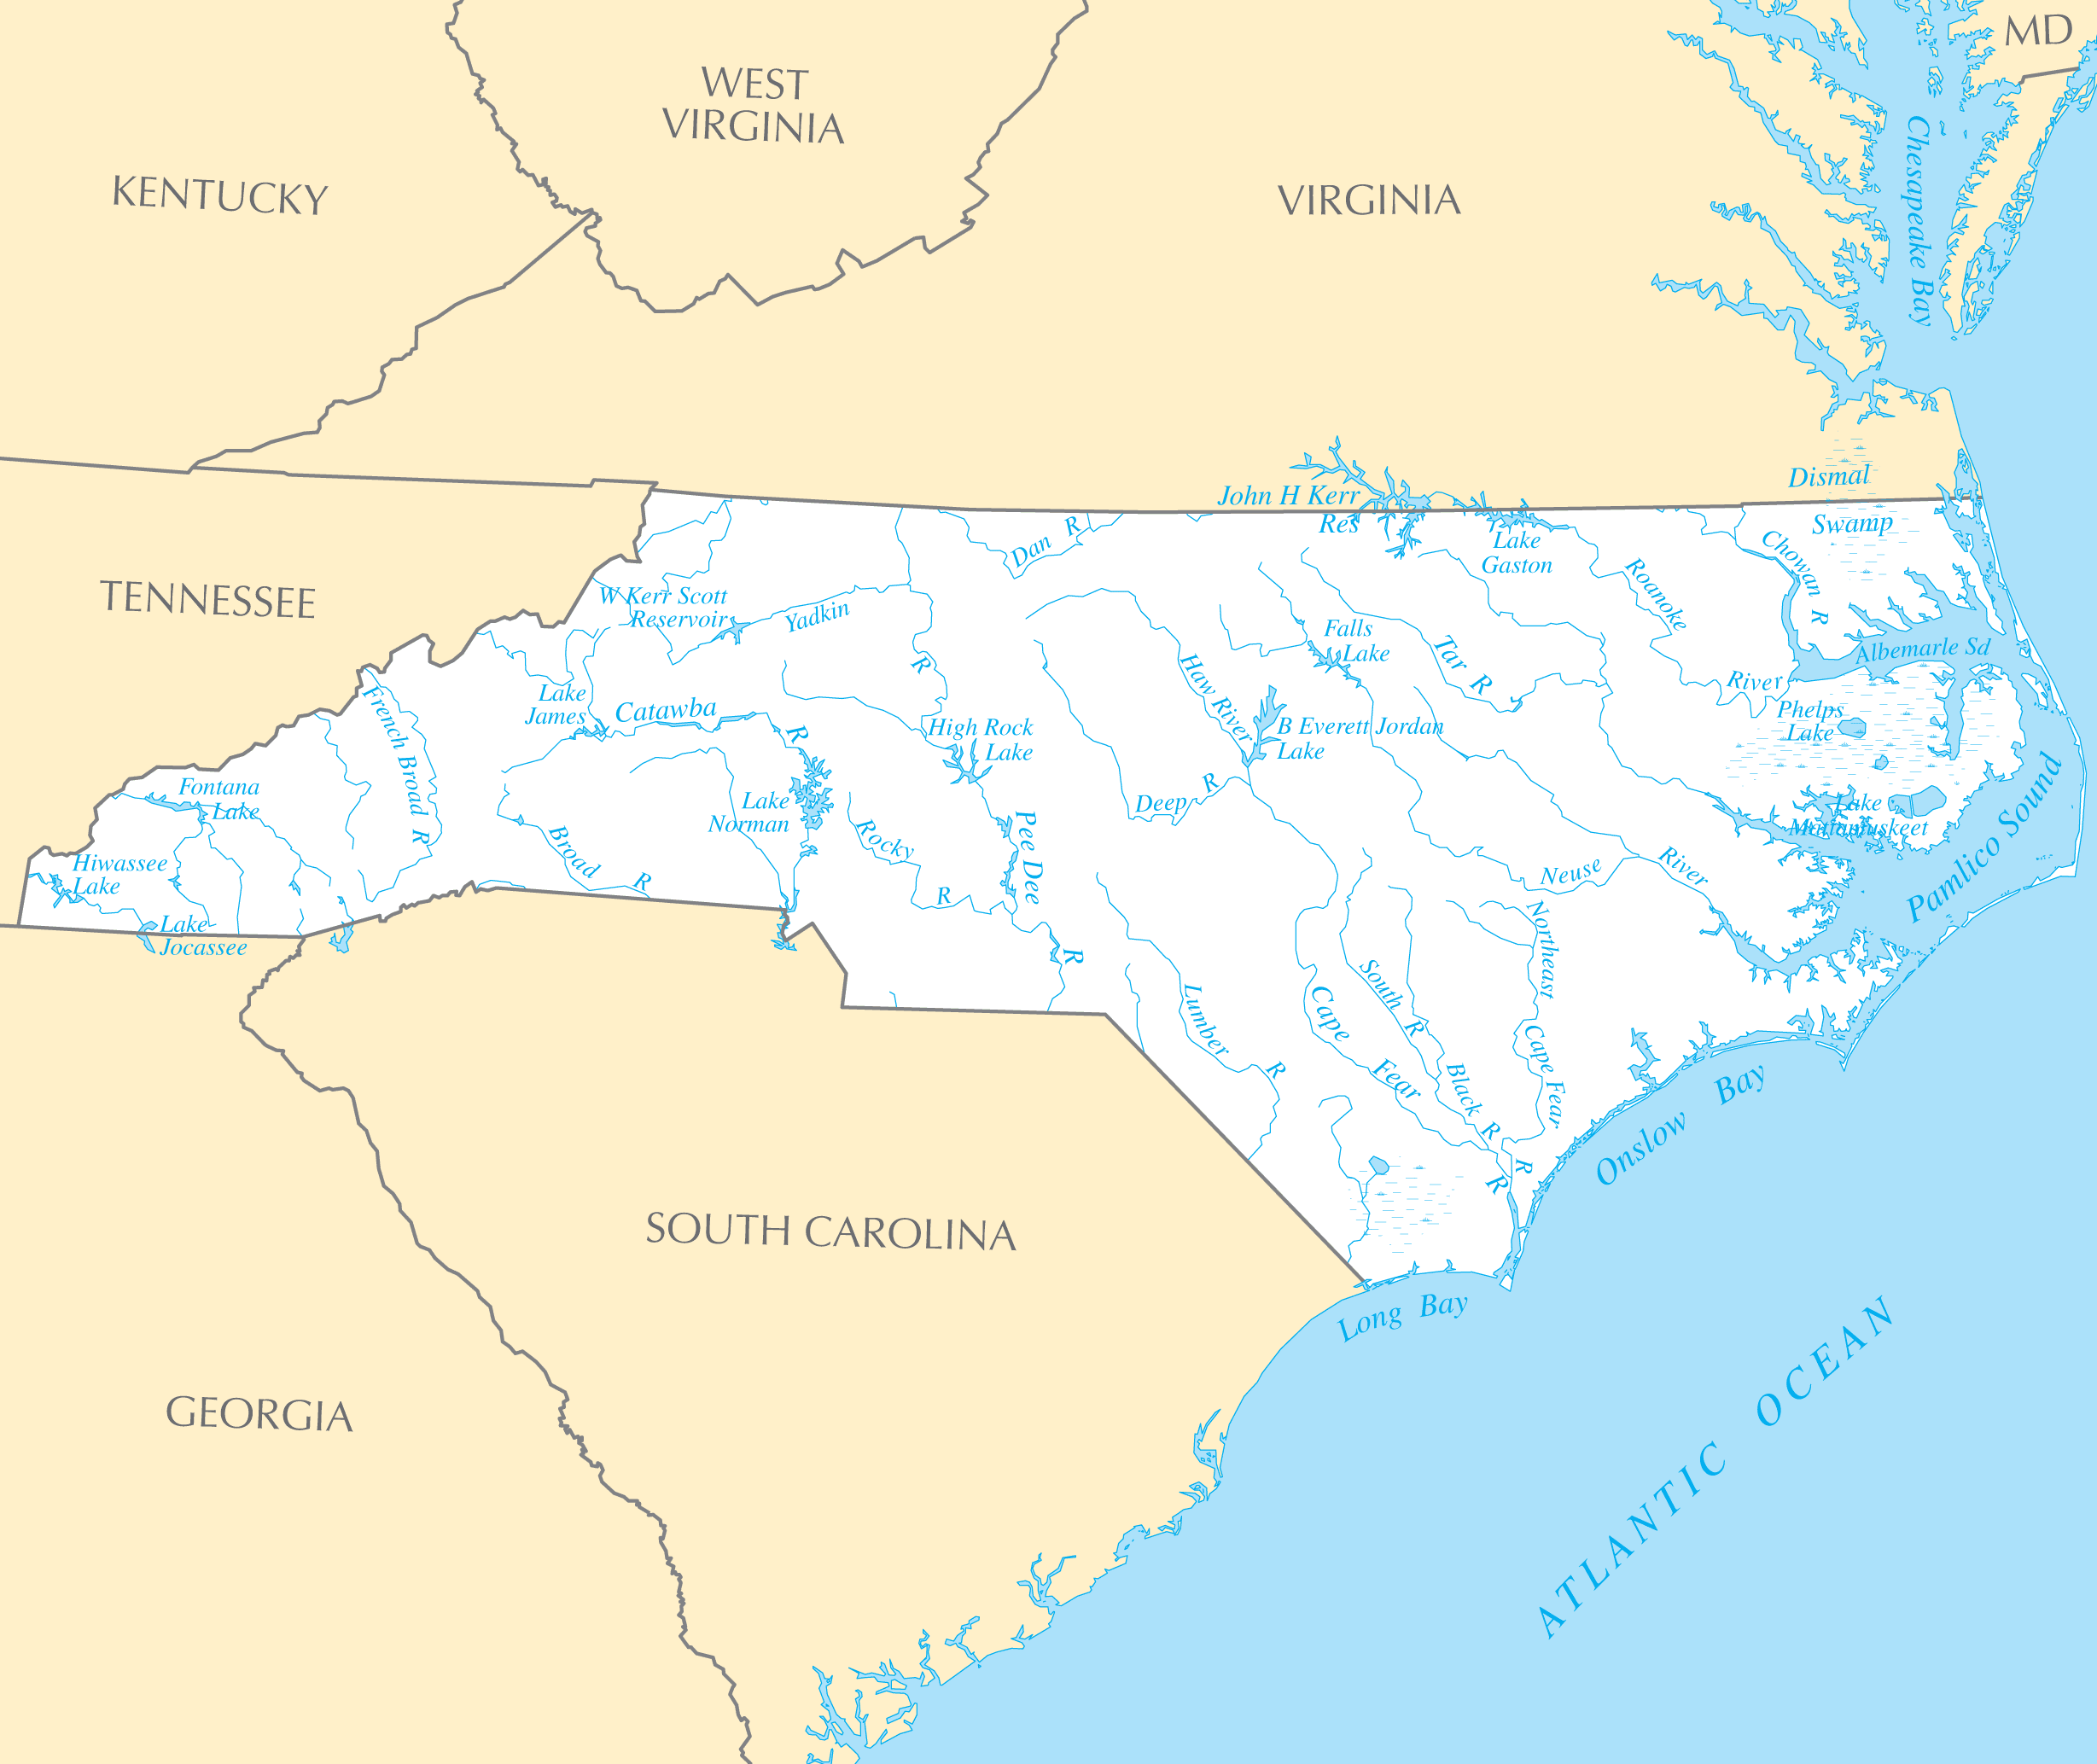 North Carolina Rivers And Lakes large map